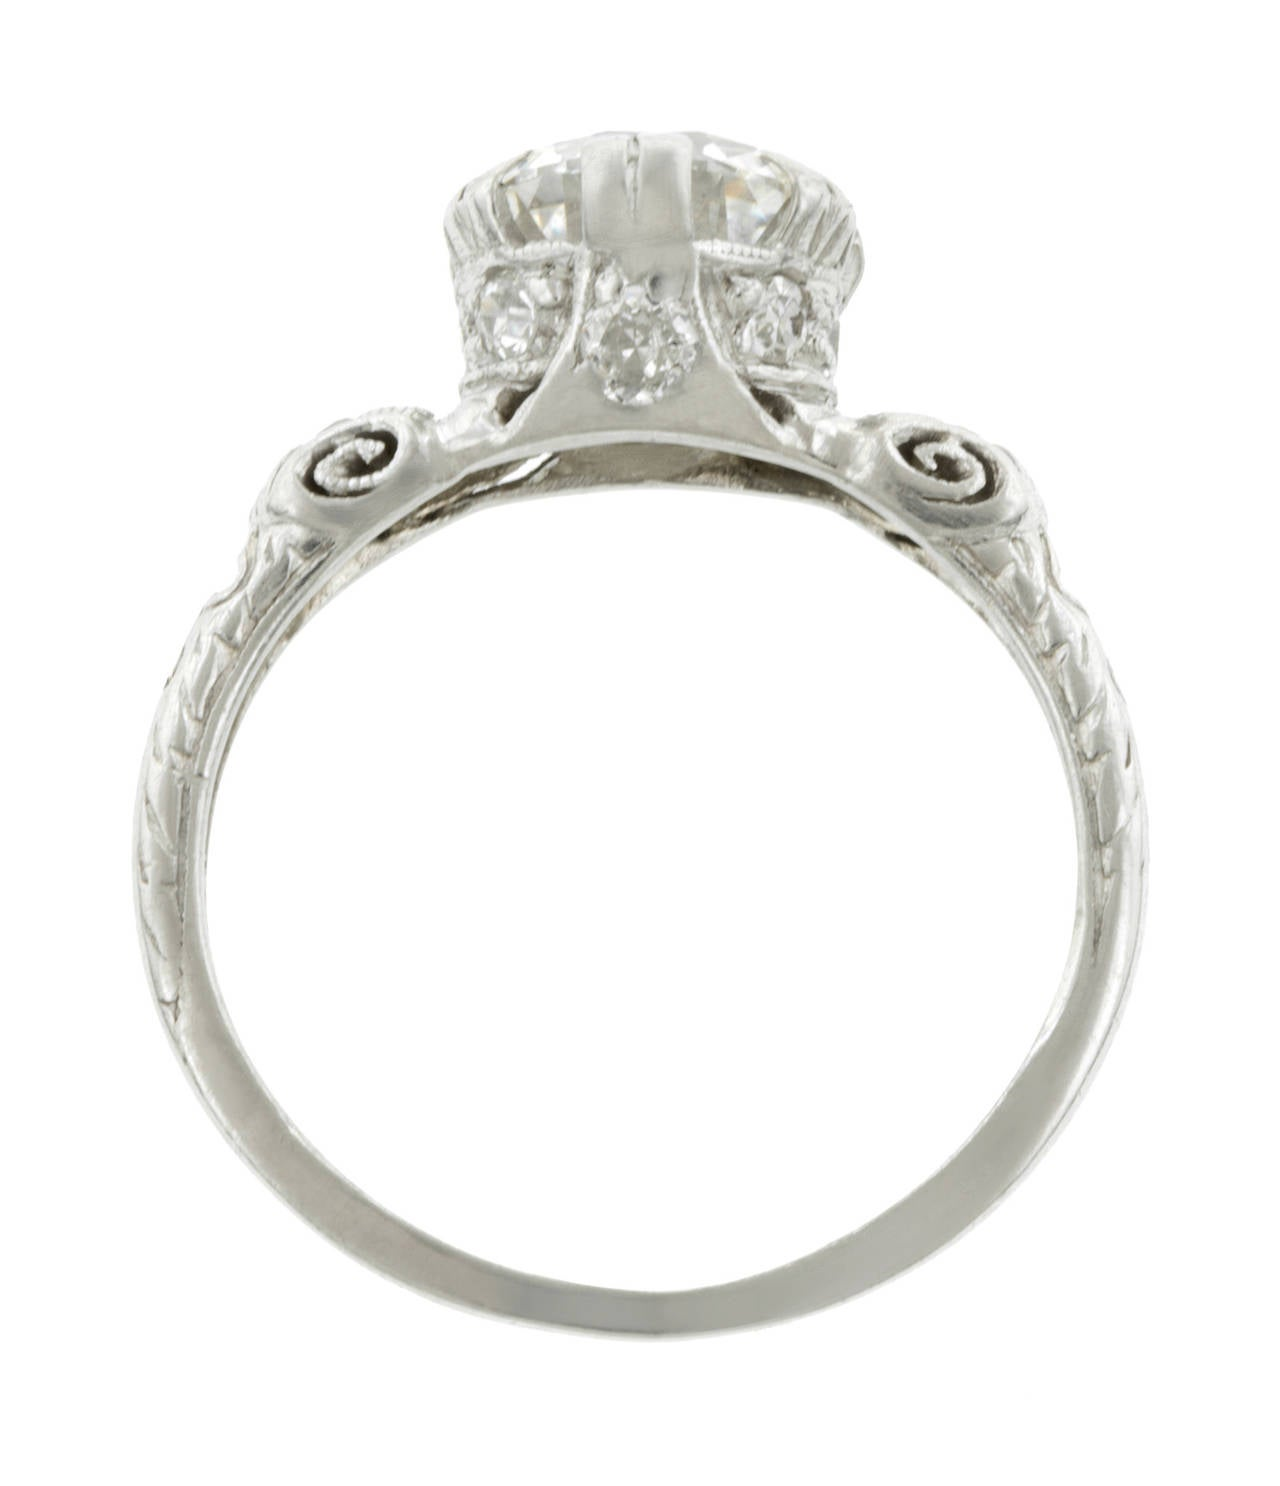 1950s Round Brilliant Cut 1 55 Carat Diamond Platinum Engagement Ring at 1stdibs